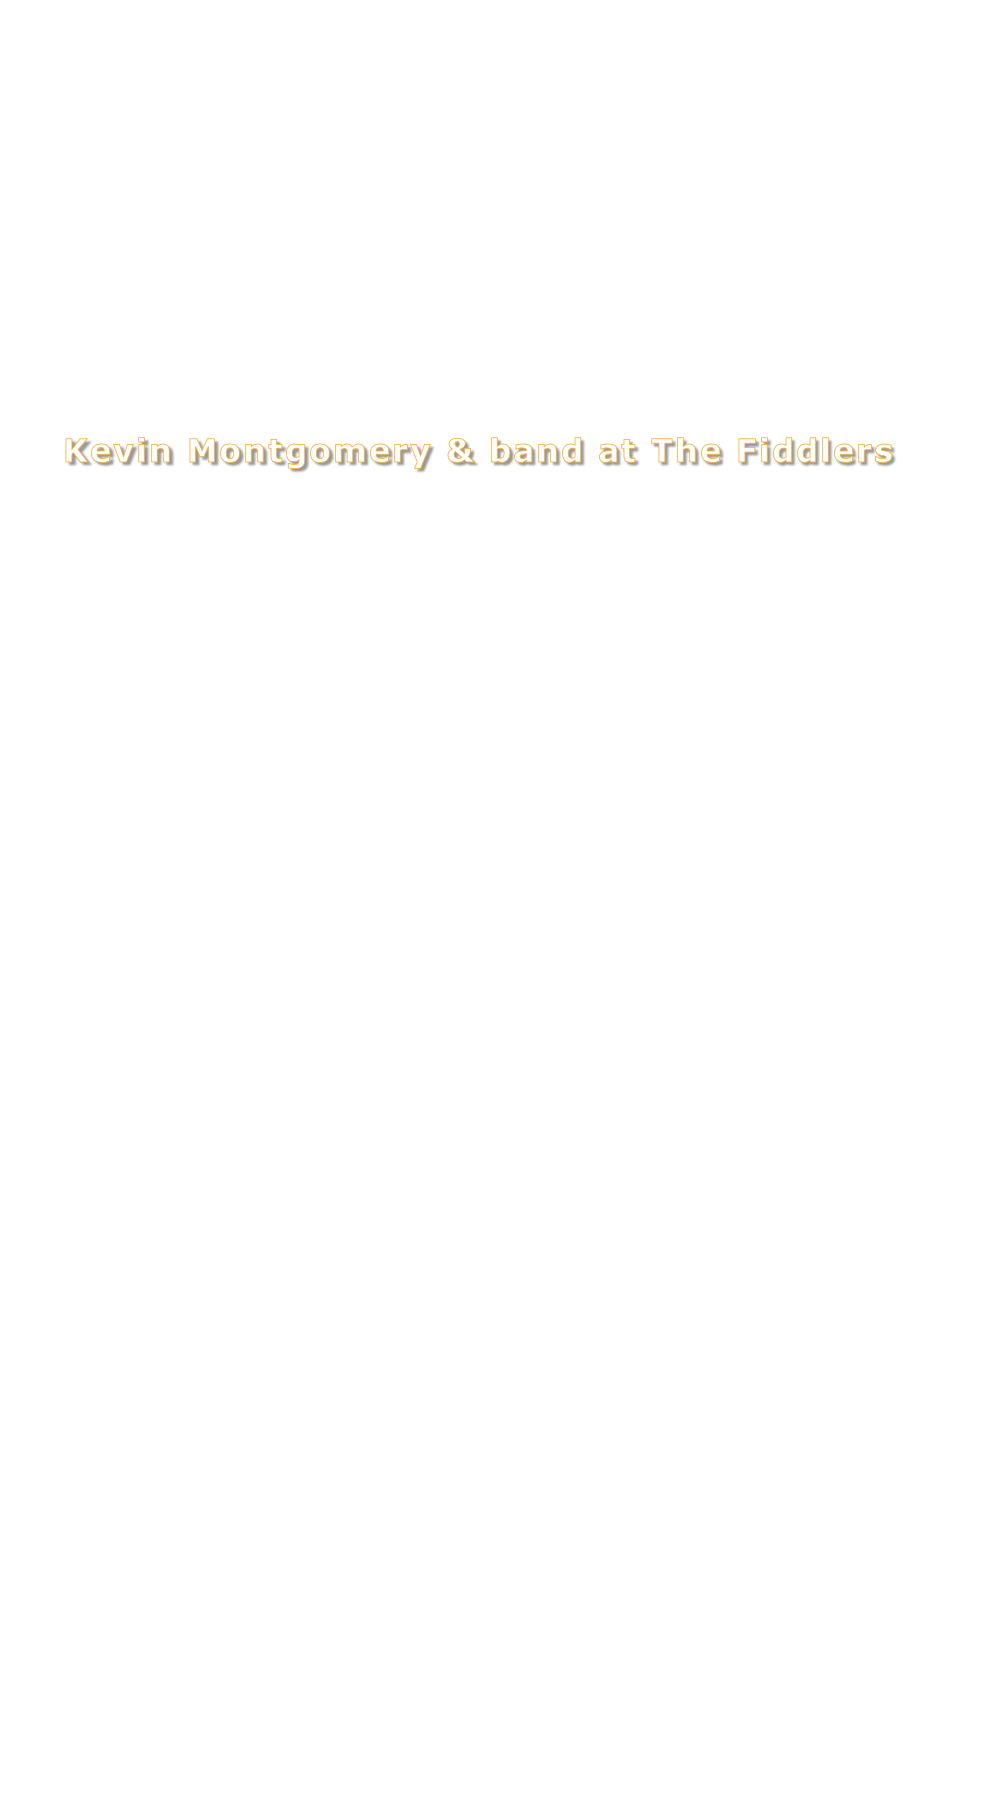 Kevin Montgomery & band at The Fiddlers